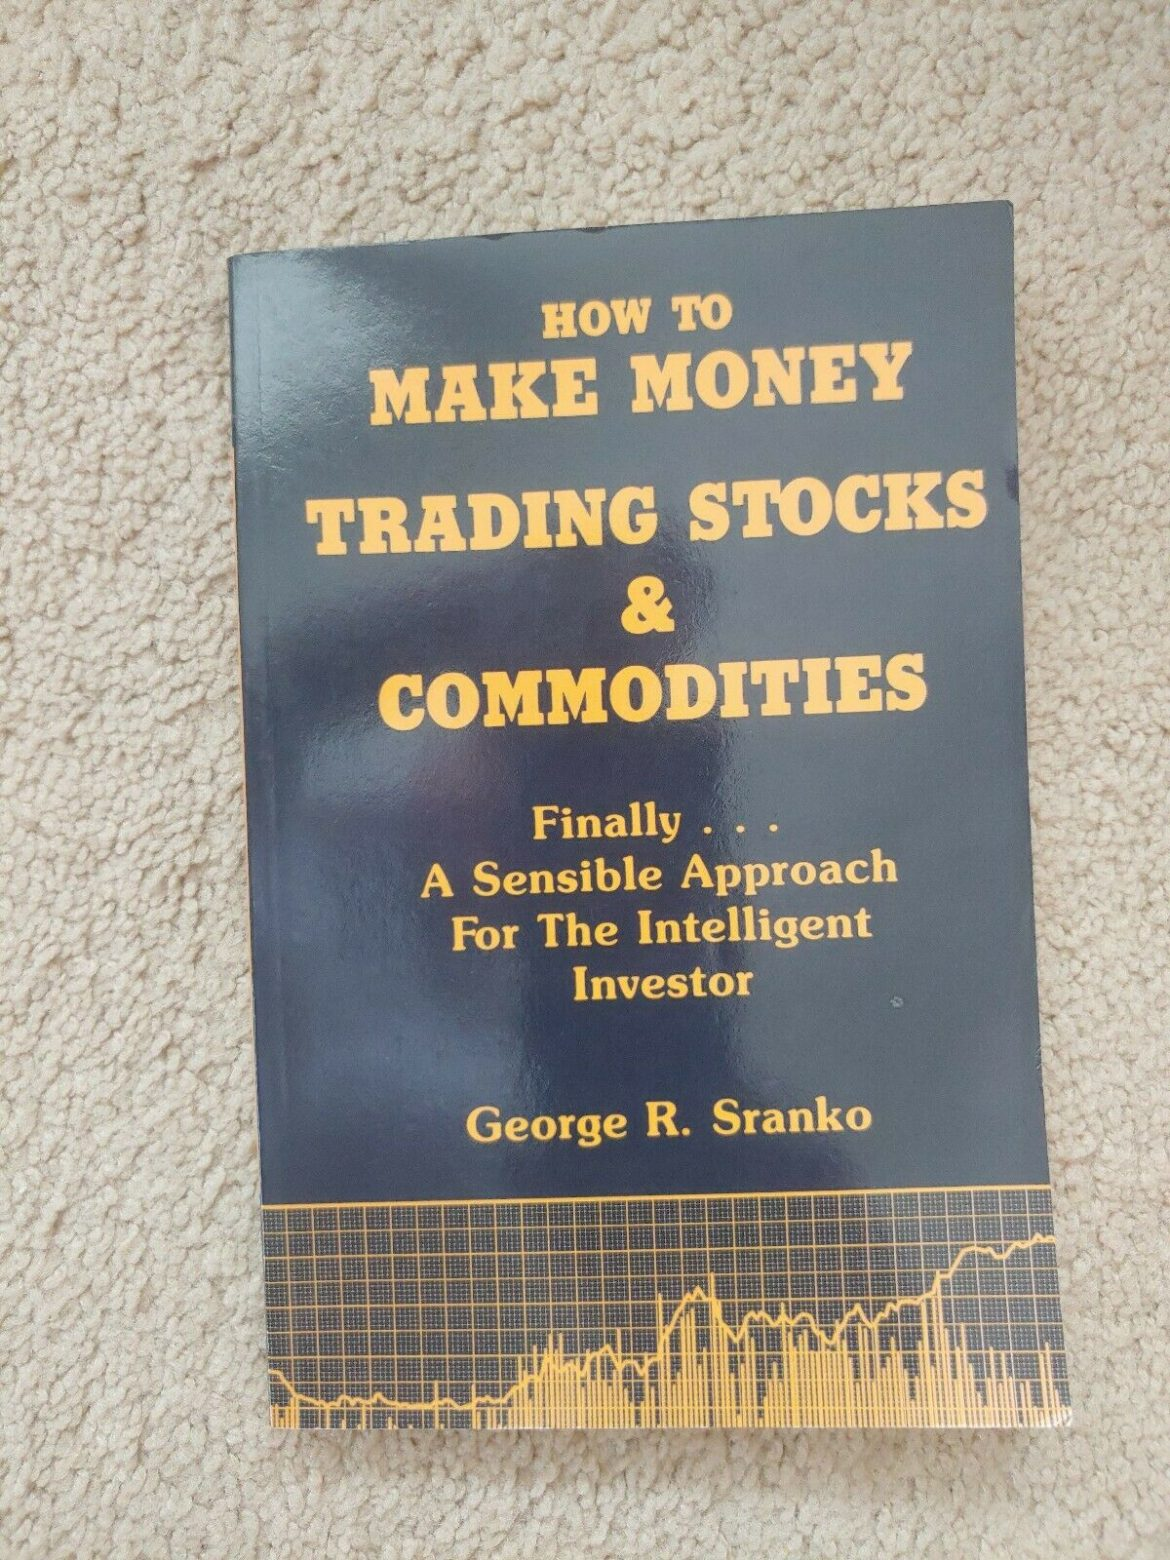 How To Make Money Trading Stocks And Commodities. George r. Sranko